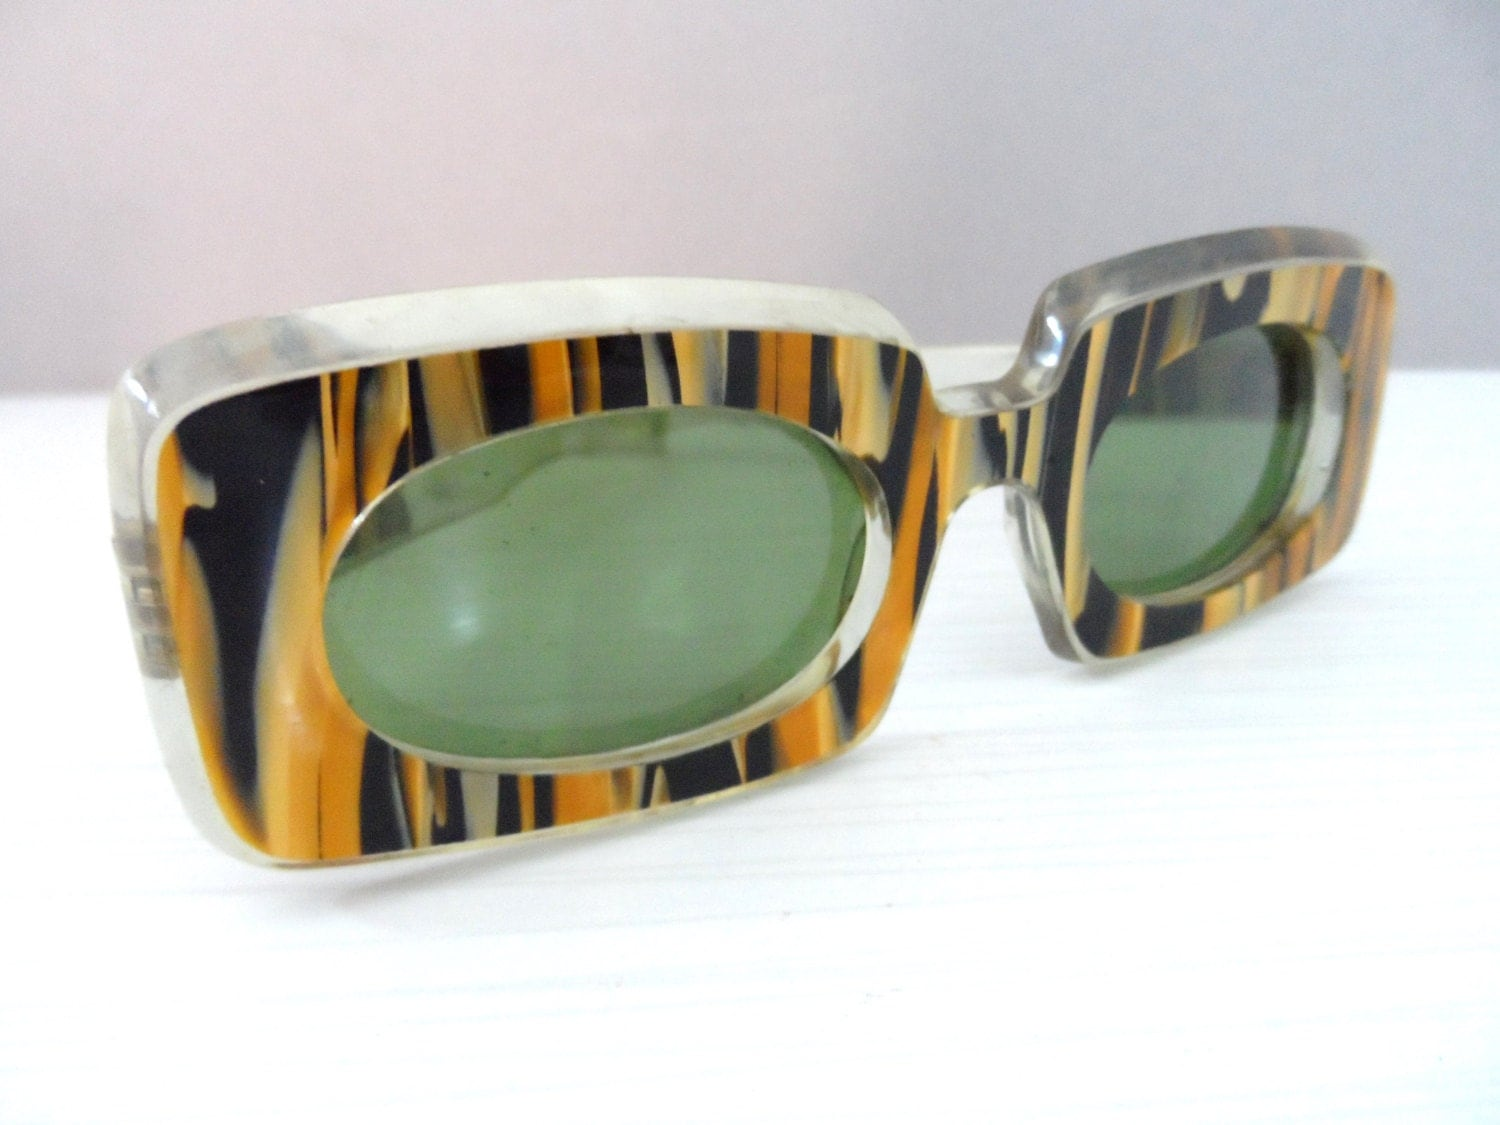 Vintage Sunglasses Old New Stock By Auctionannie On Etsy